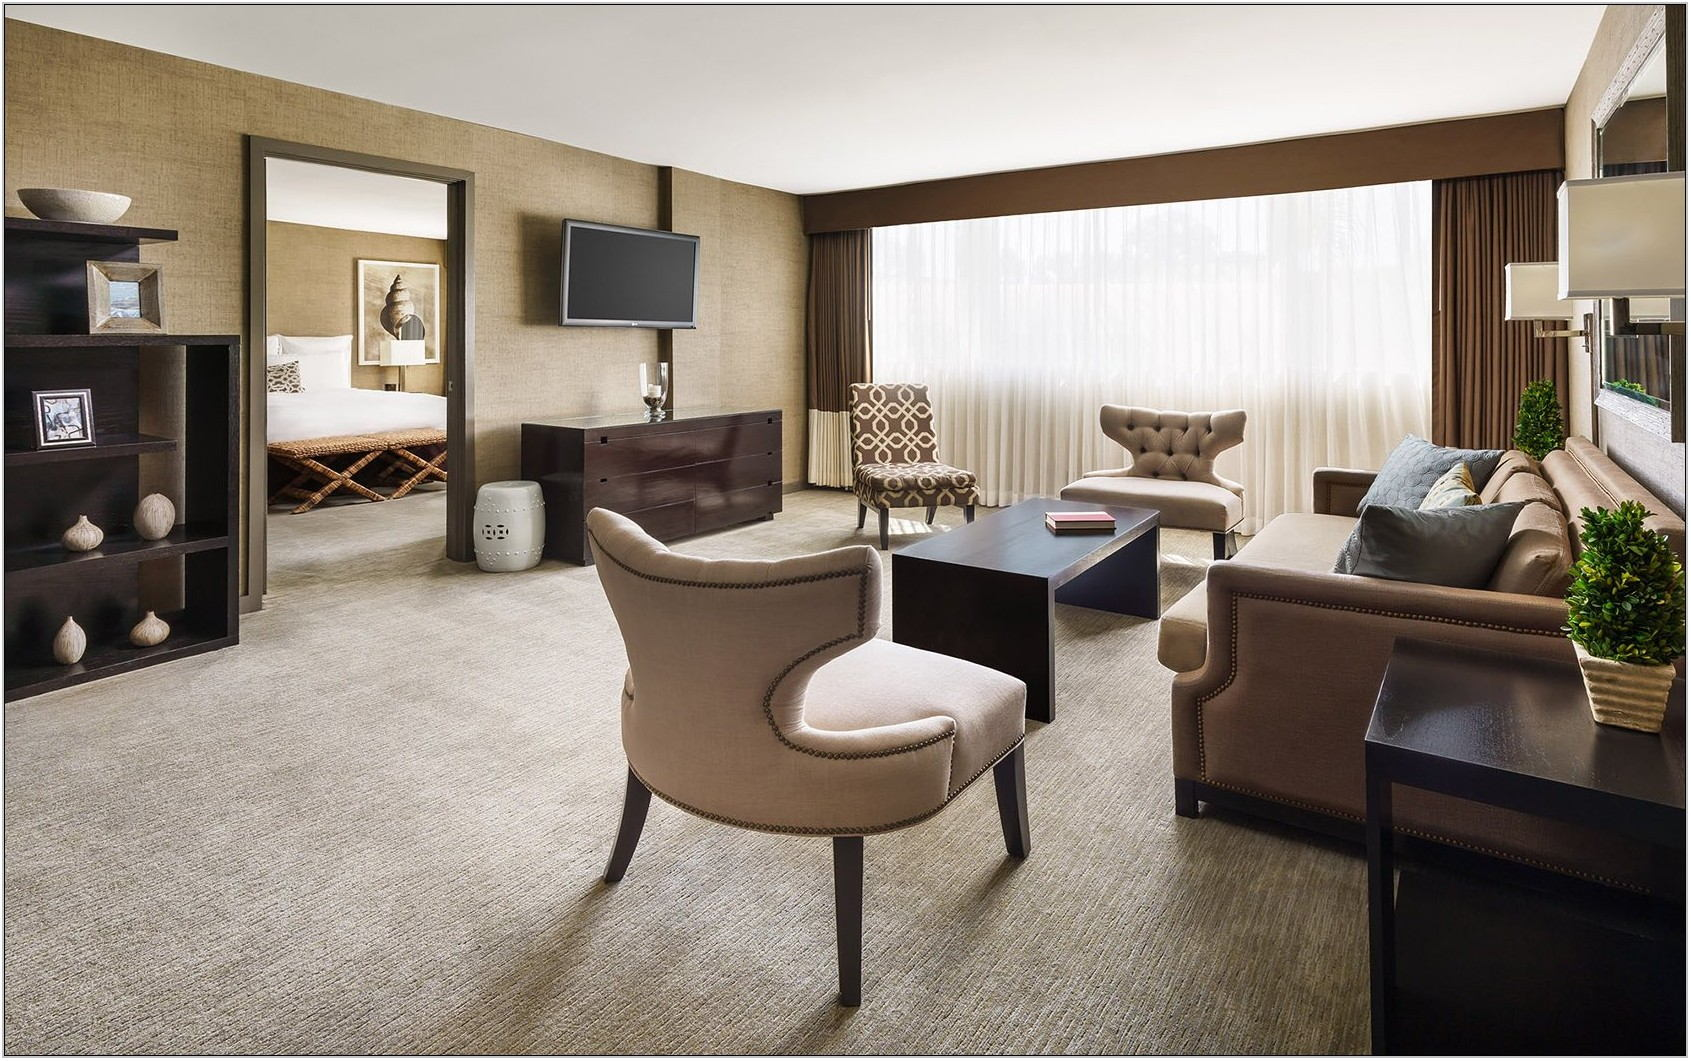 Hotels With Living Room And Bedroom